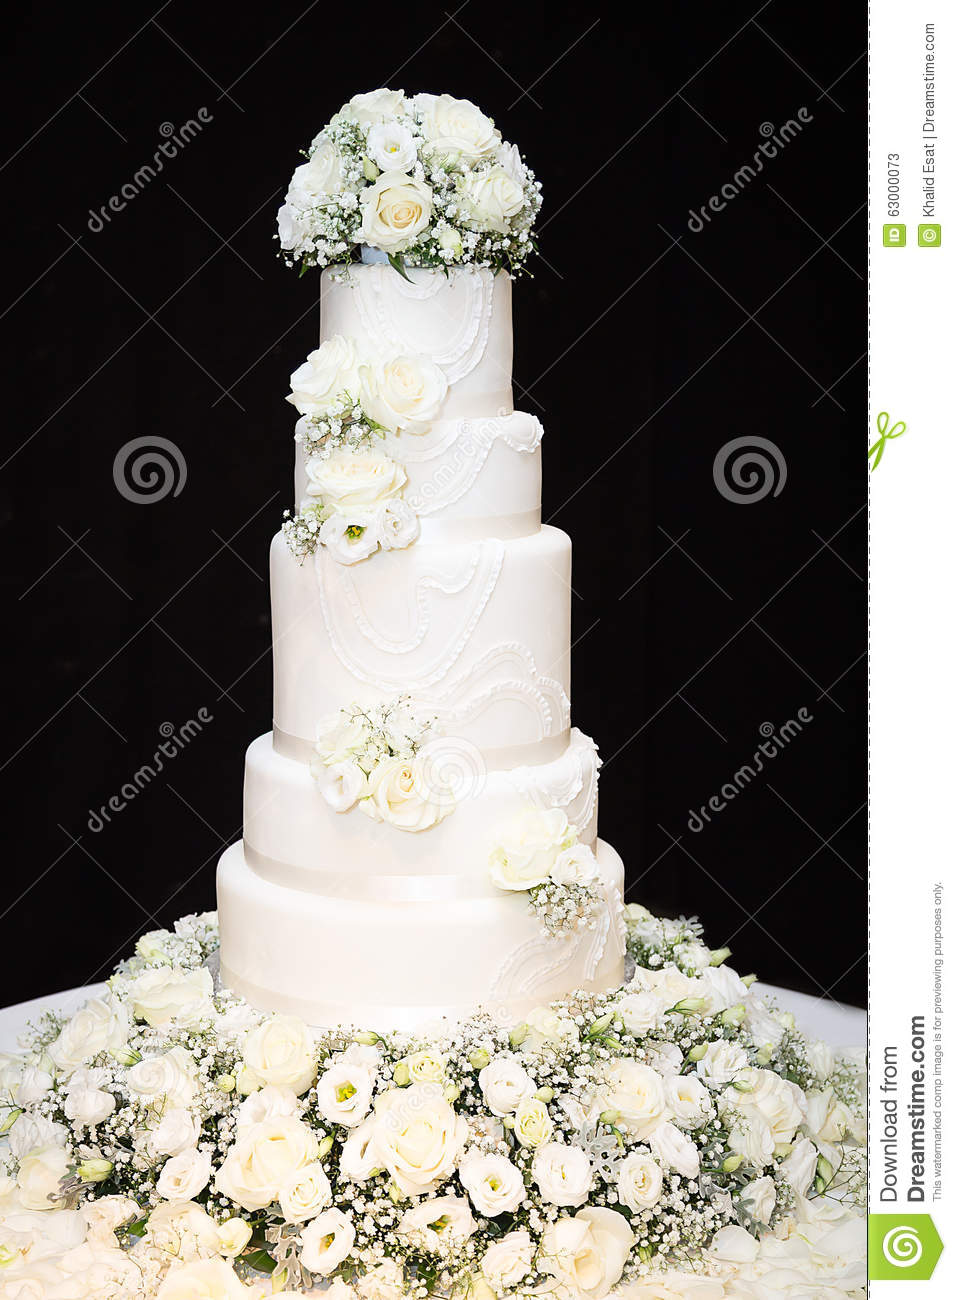 White Tall Wedding Cake With Flowers Stock Image - Image of ...